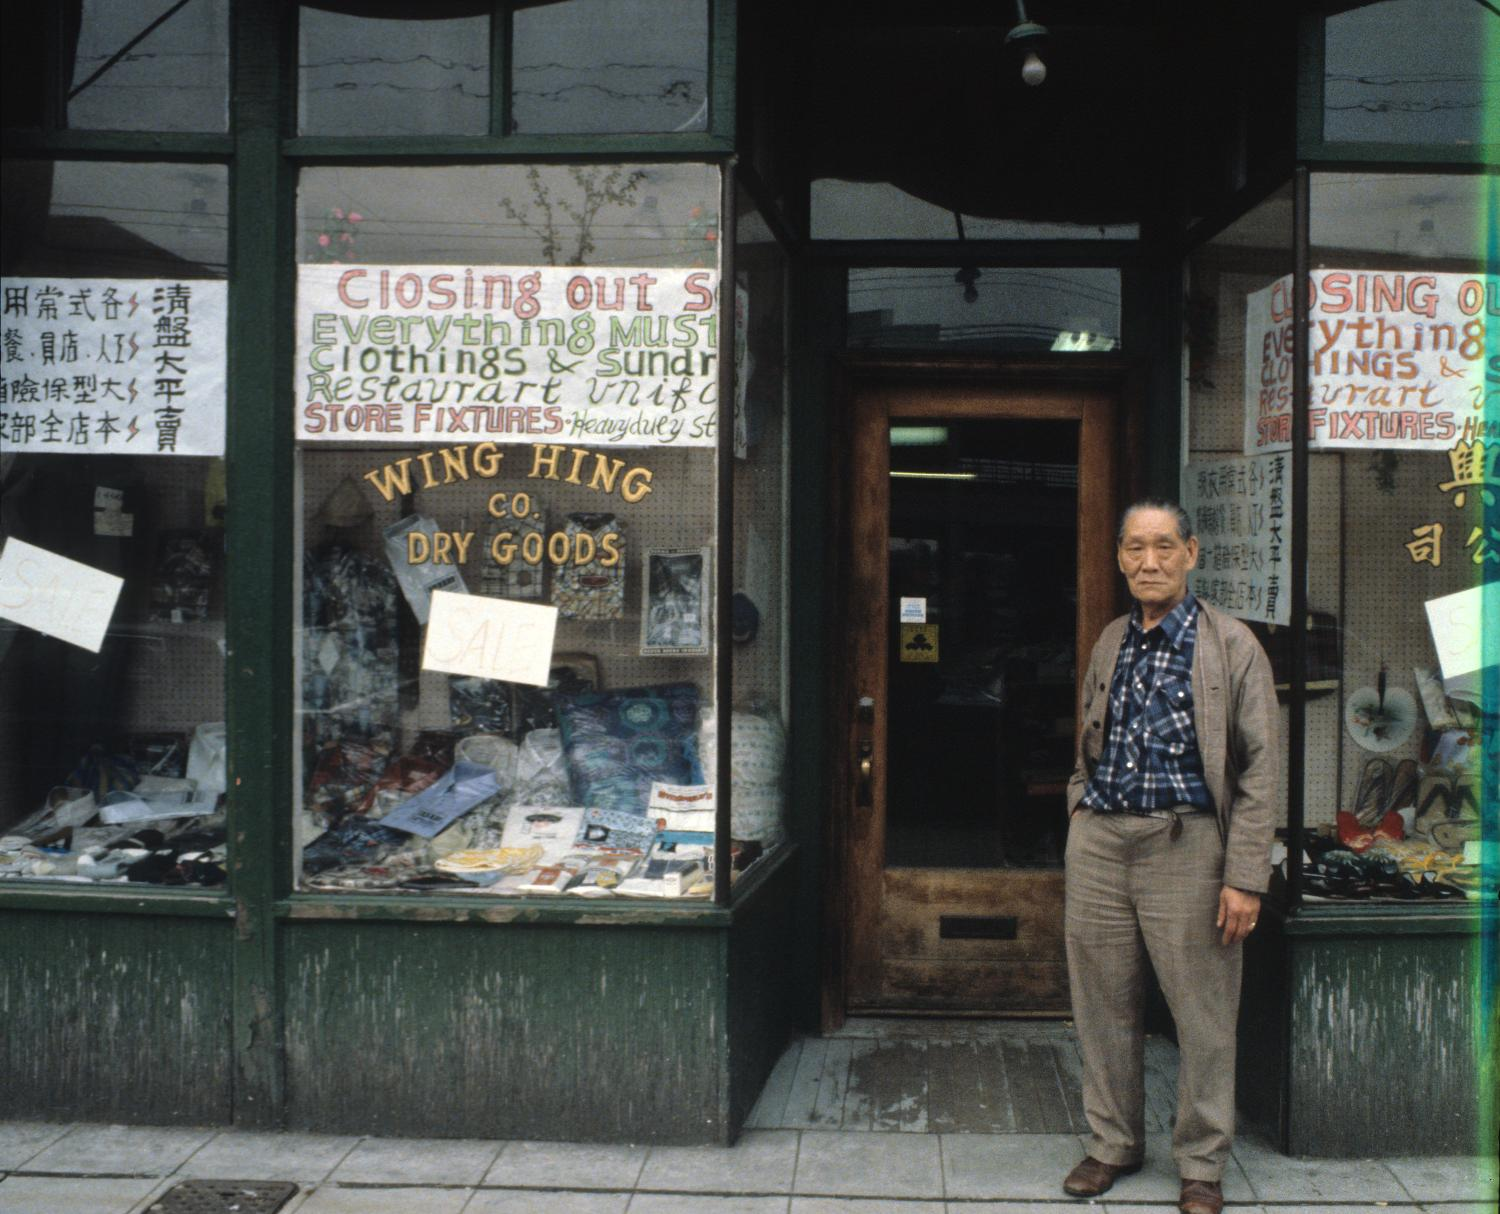 Wing Hing Dry Goods owner Lin Bei-lian standing at the front entrance to his shop prior to the business's final closure. In the 1970s and 1980s, Yee photographed many Chinatown buildings and businesses to document changes in the neighbourhood's landscape. Photographer:  Paul Yee. Reference code AM1523-S6-F72-: 2008-010.0489.